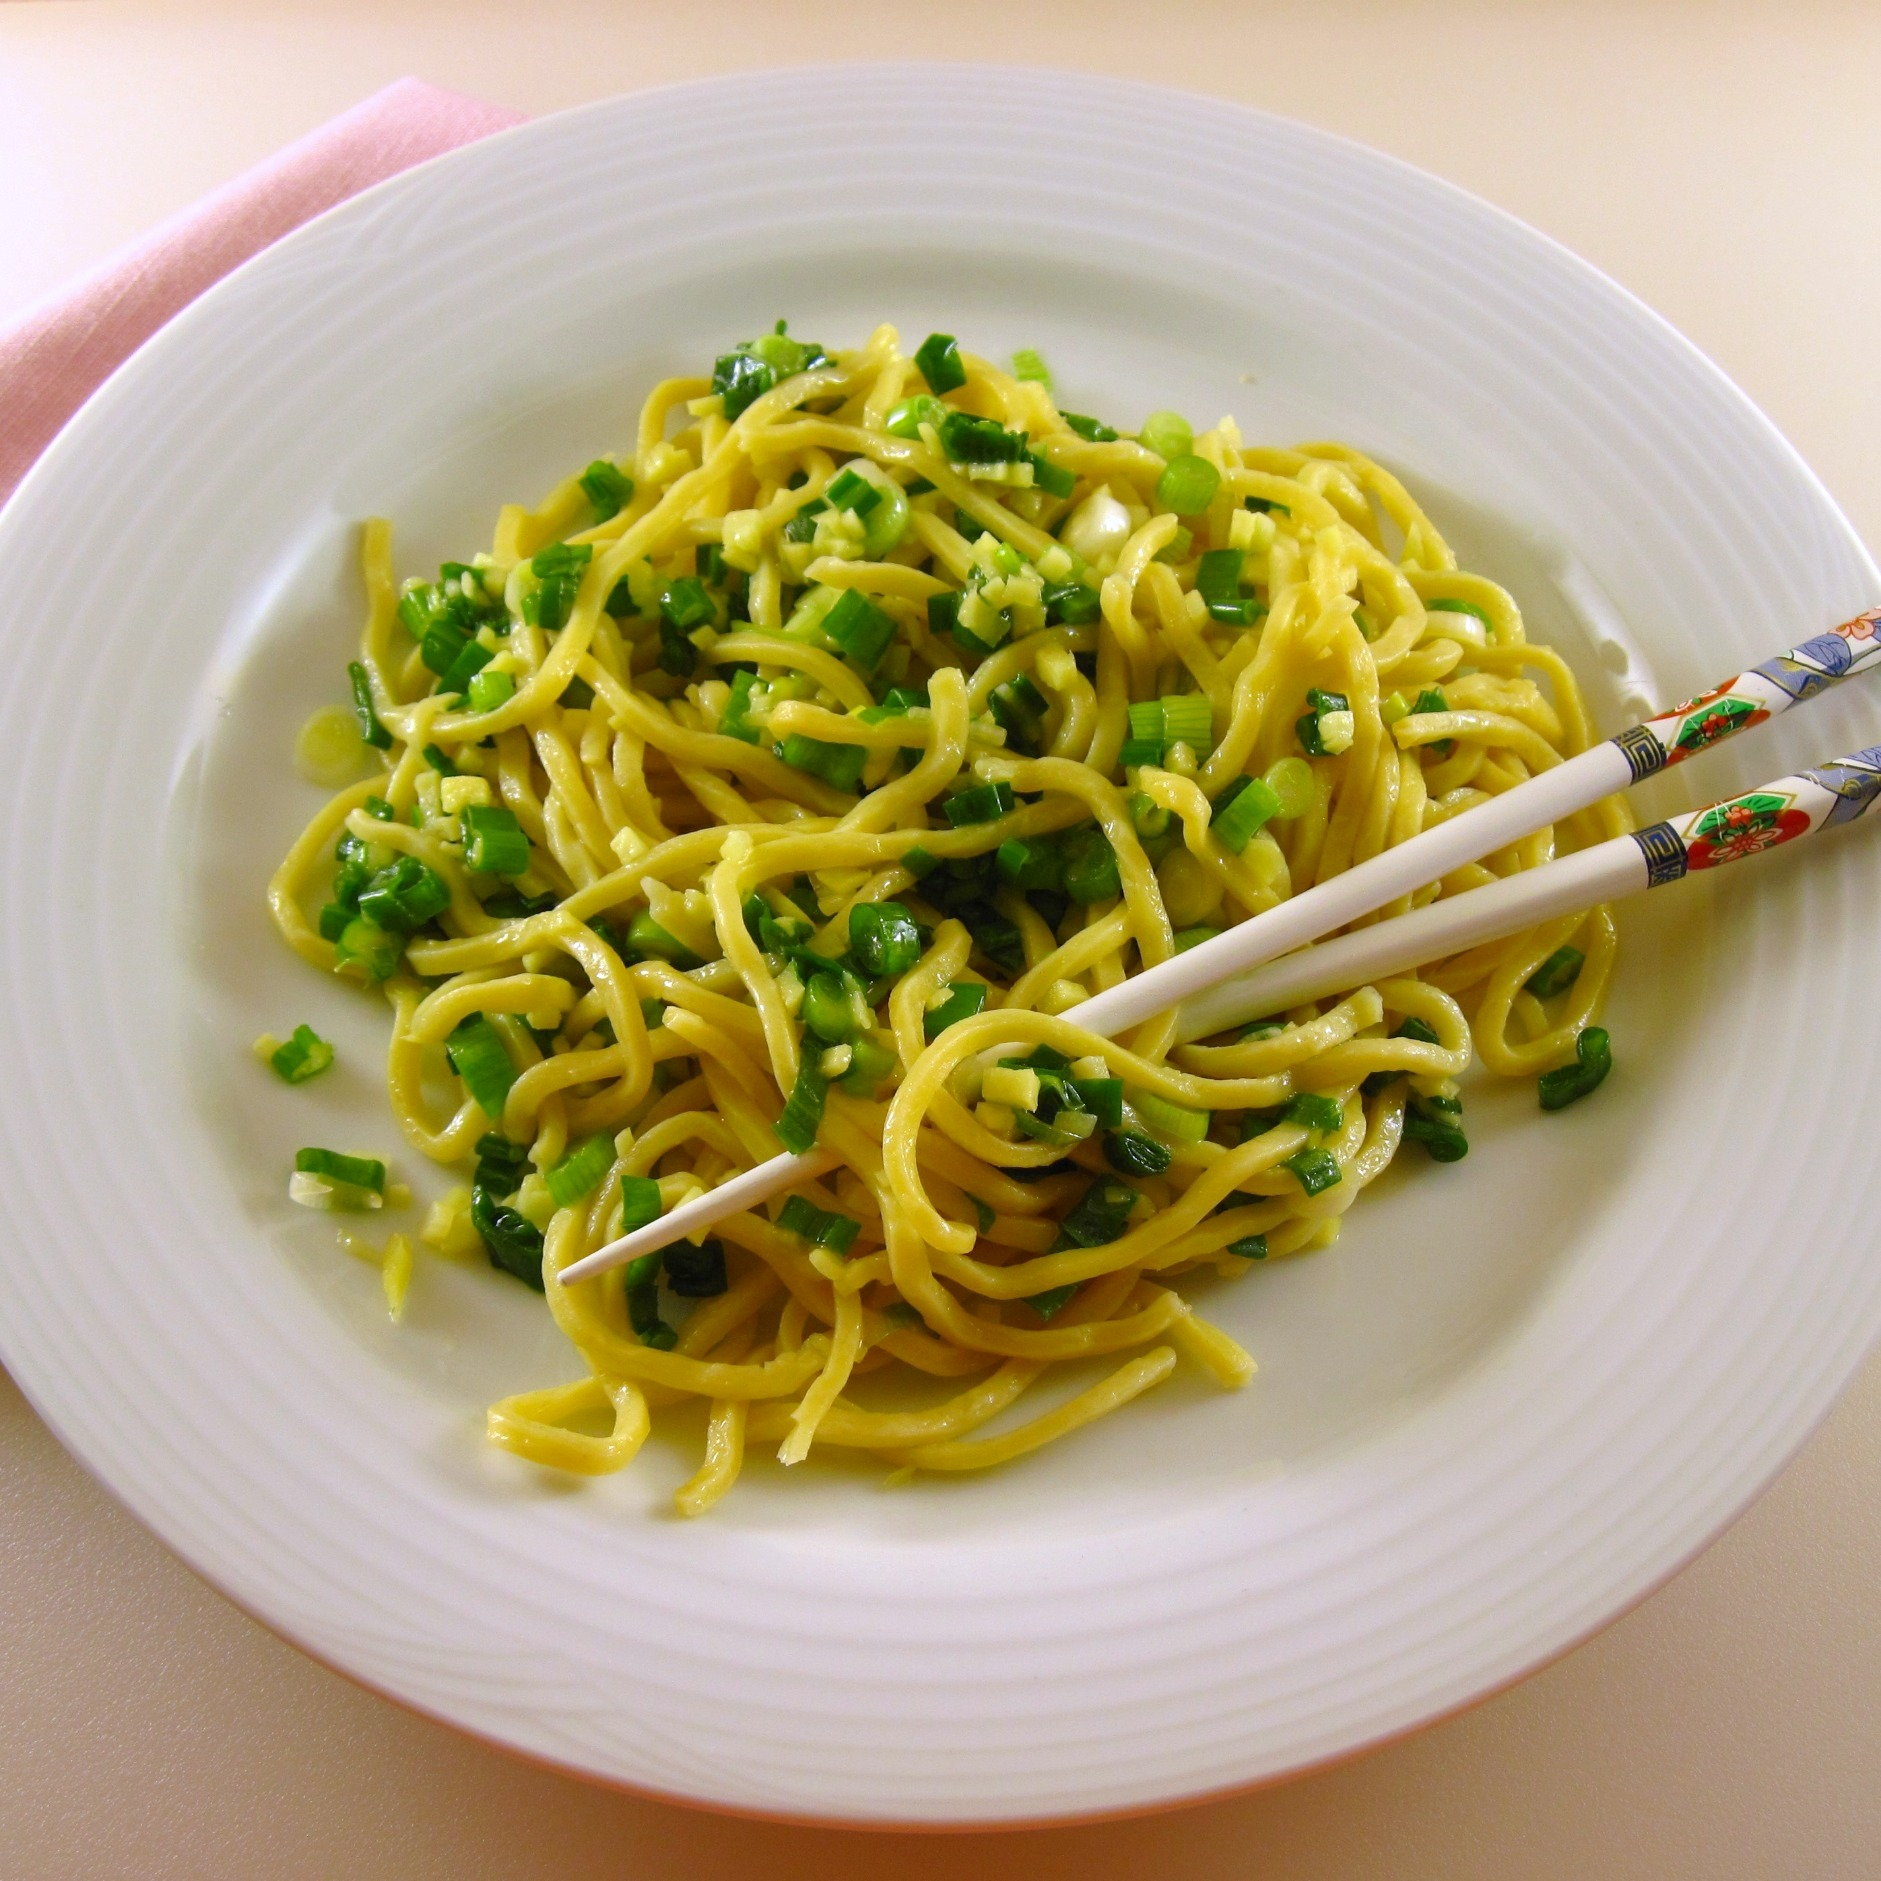 Noodles with Ginger Scallion Sauce | In the kitchen with Kath